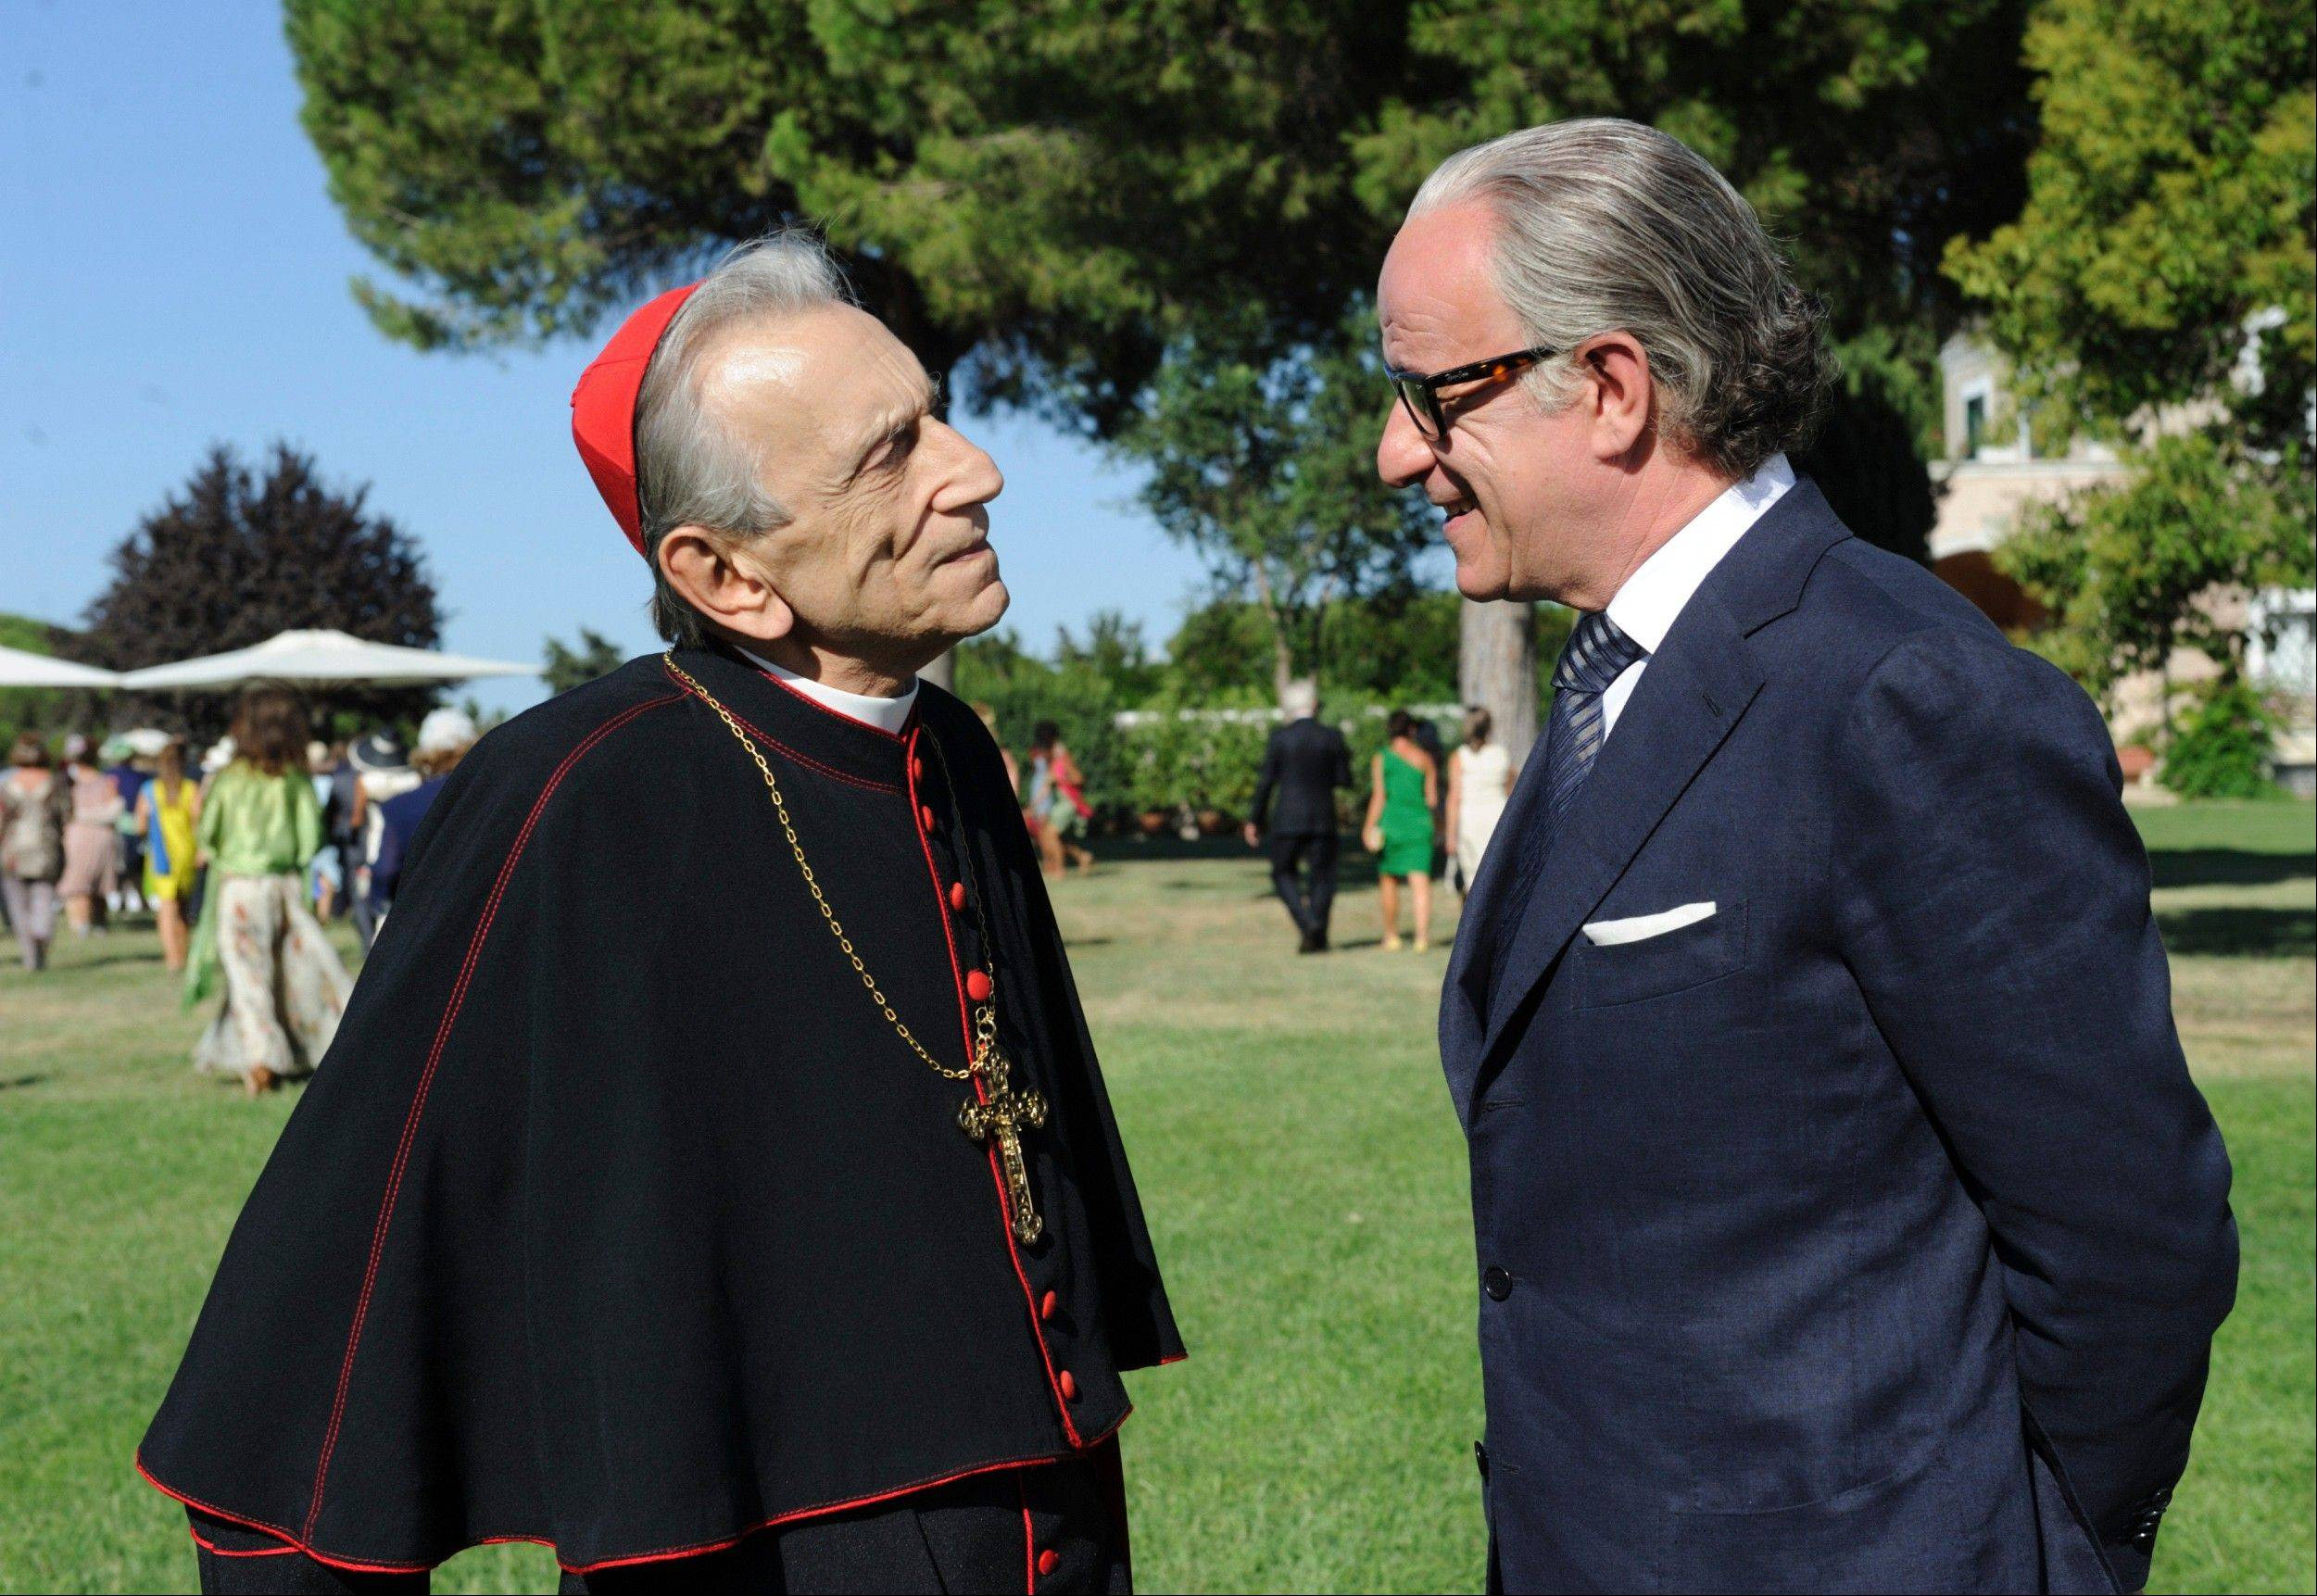 "This undated file picture made available by the press office Punto e Virgola shows Italian actor Toni Servillo, as Jep Gambardella, right, and actor Roberto Herlitzka, as Cardinal Bellucci, in a scene from Italian director Paolo Sorrentino's ""La grande bellezza"" (The Great Beauty)."